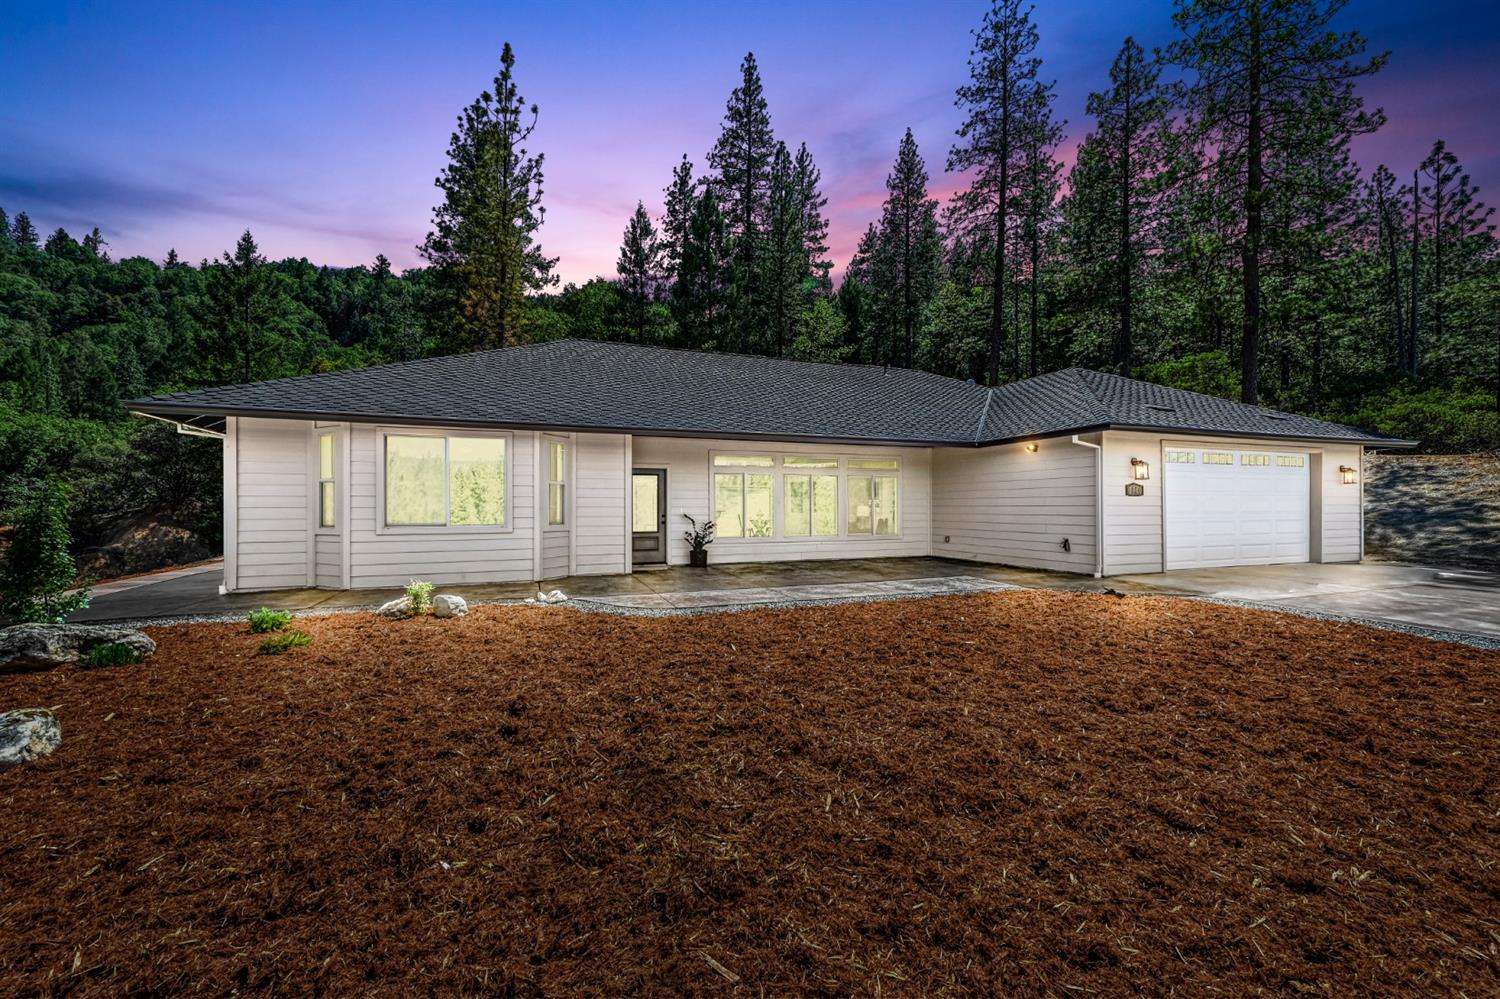 Photo of 3960 Fort Jim Road, Placerville, CA 95667